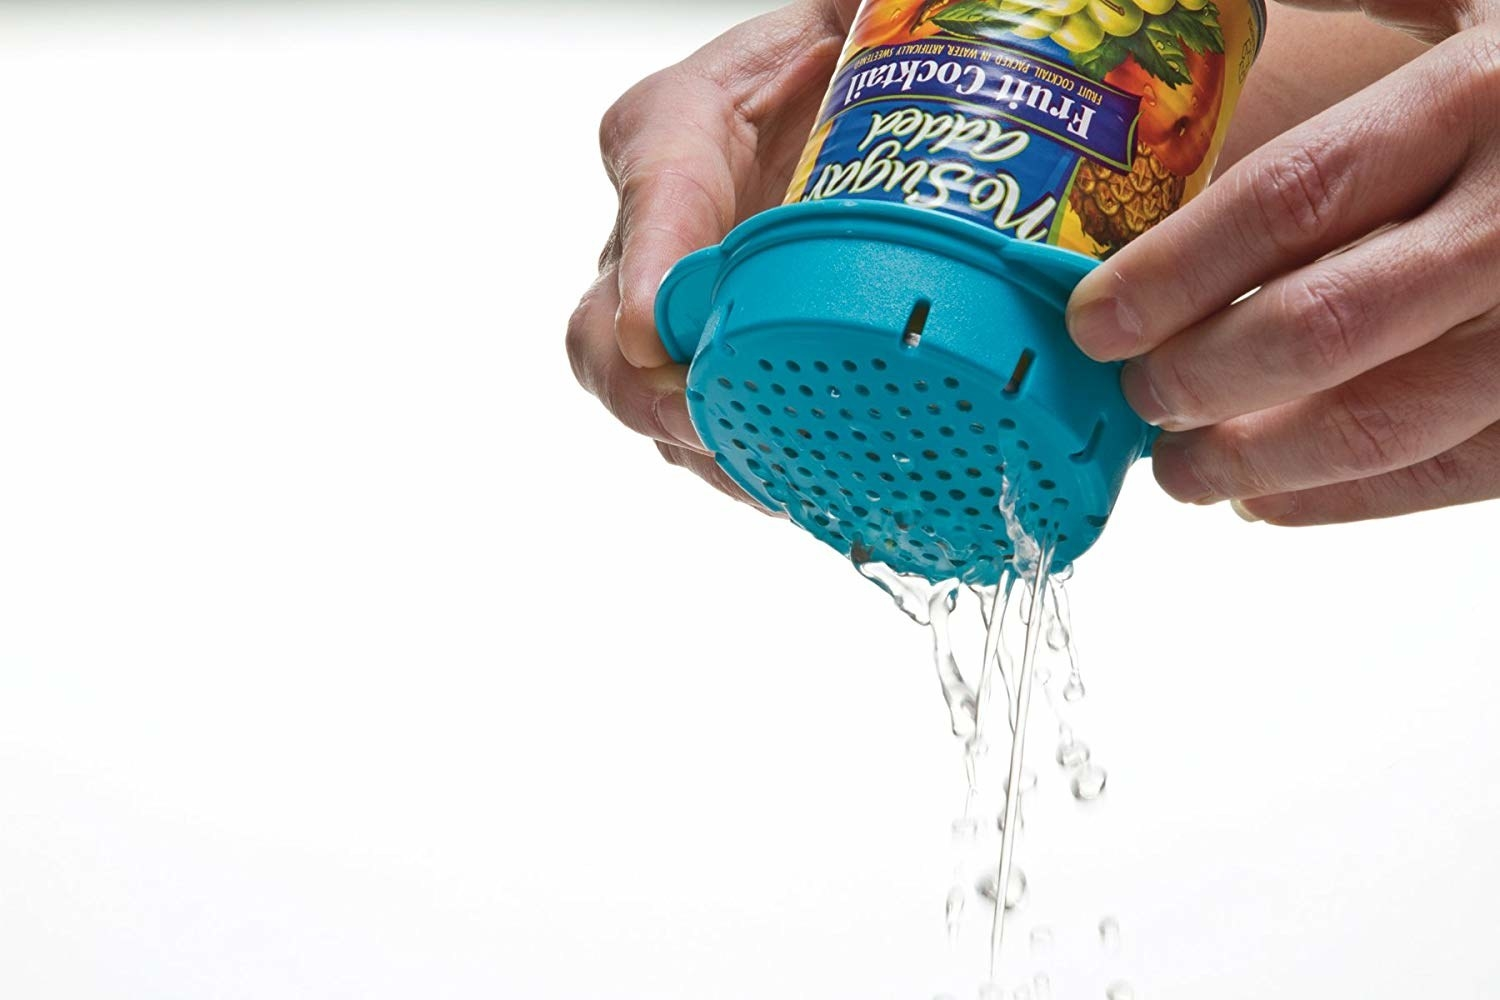 a person using the can colander to drain tuna fish